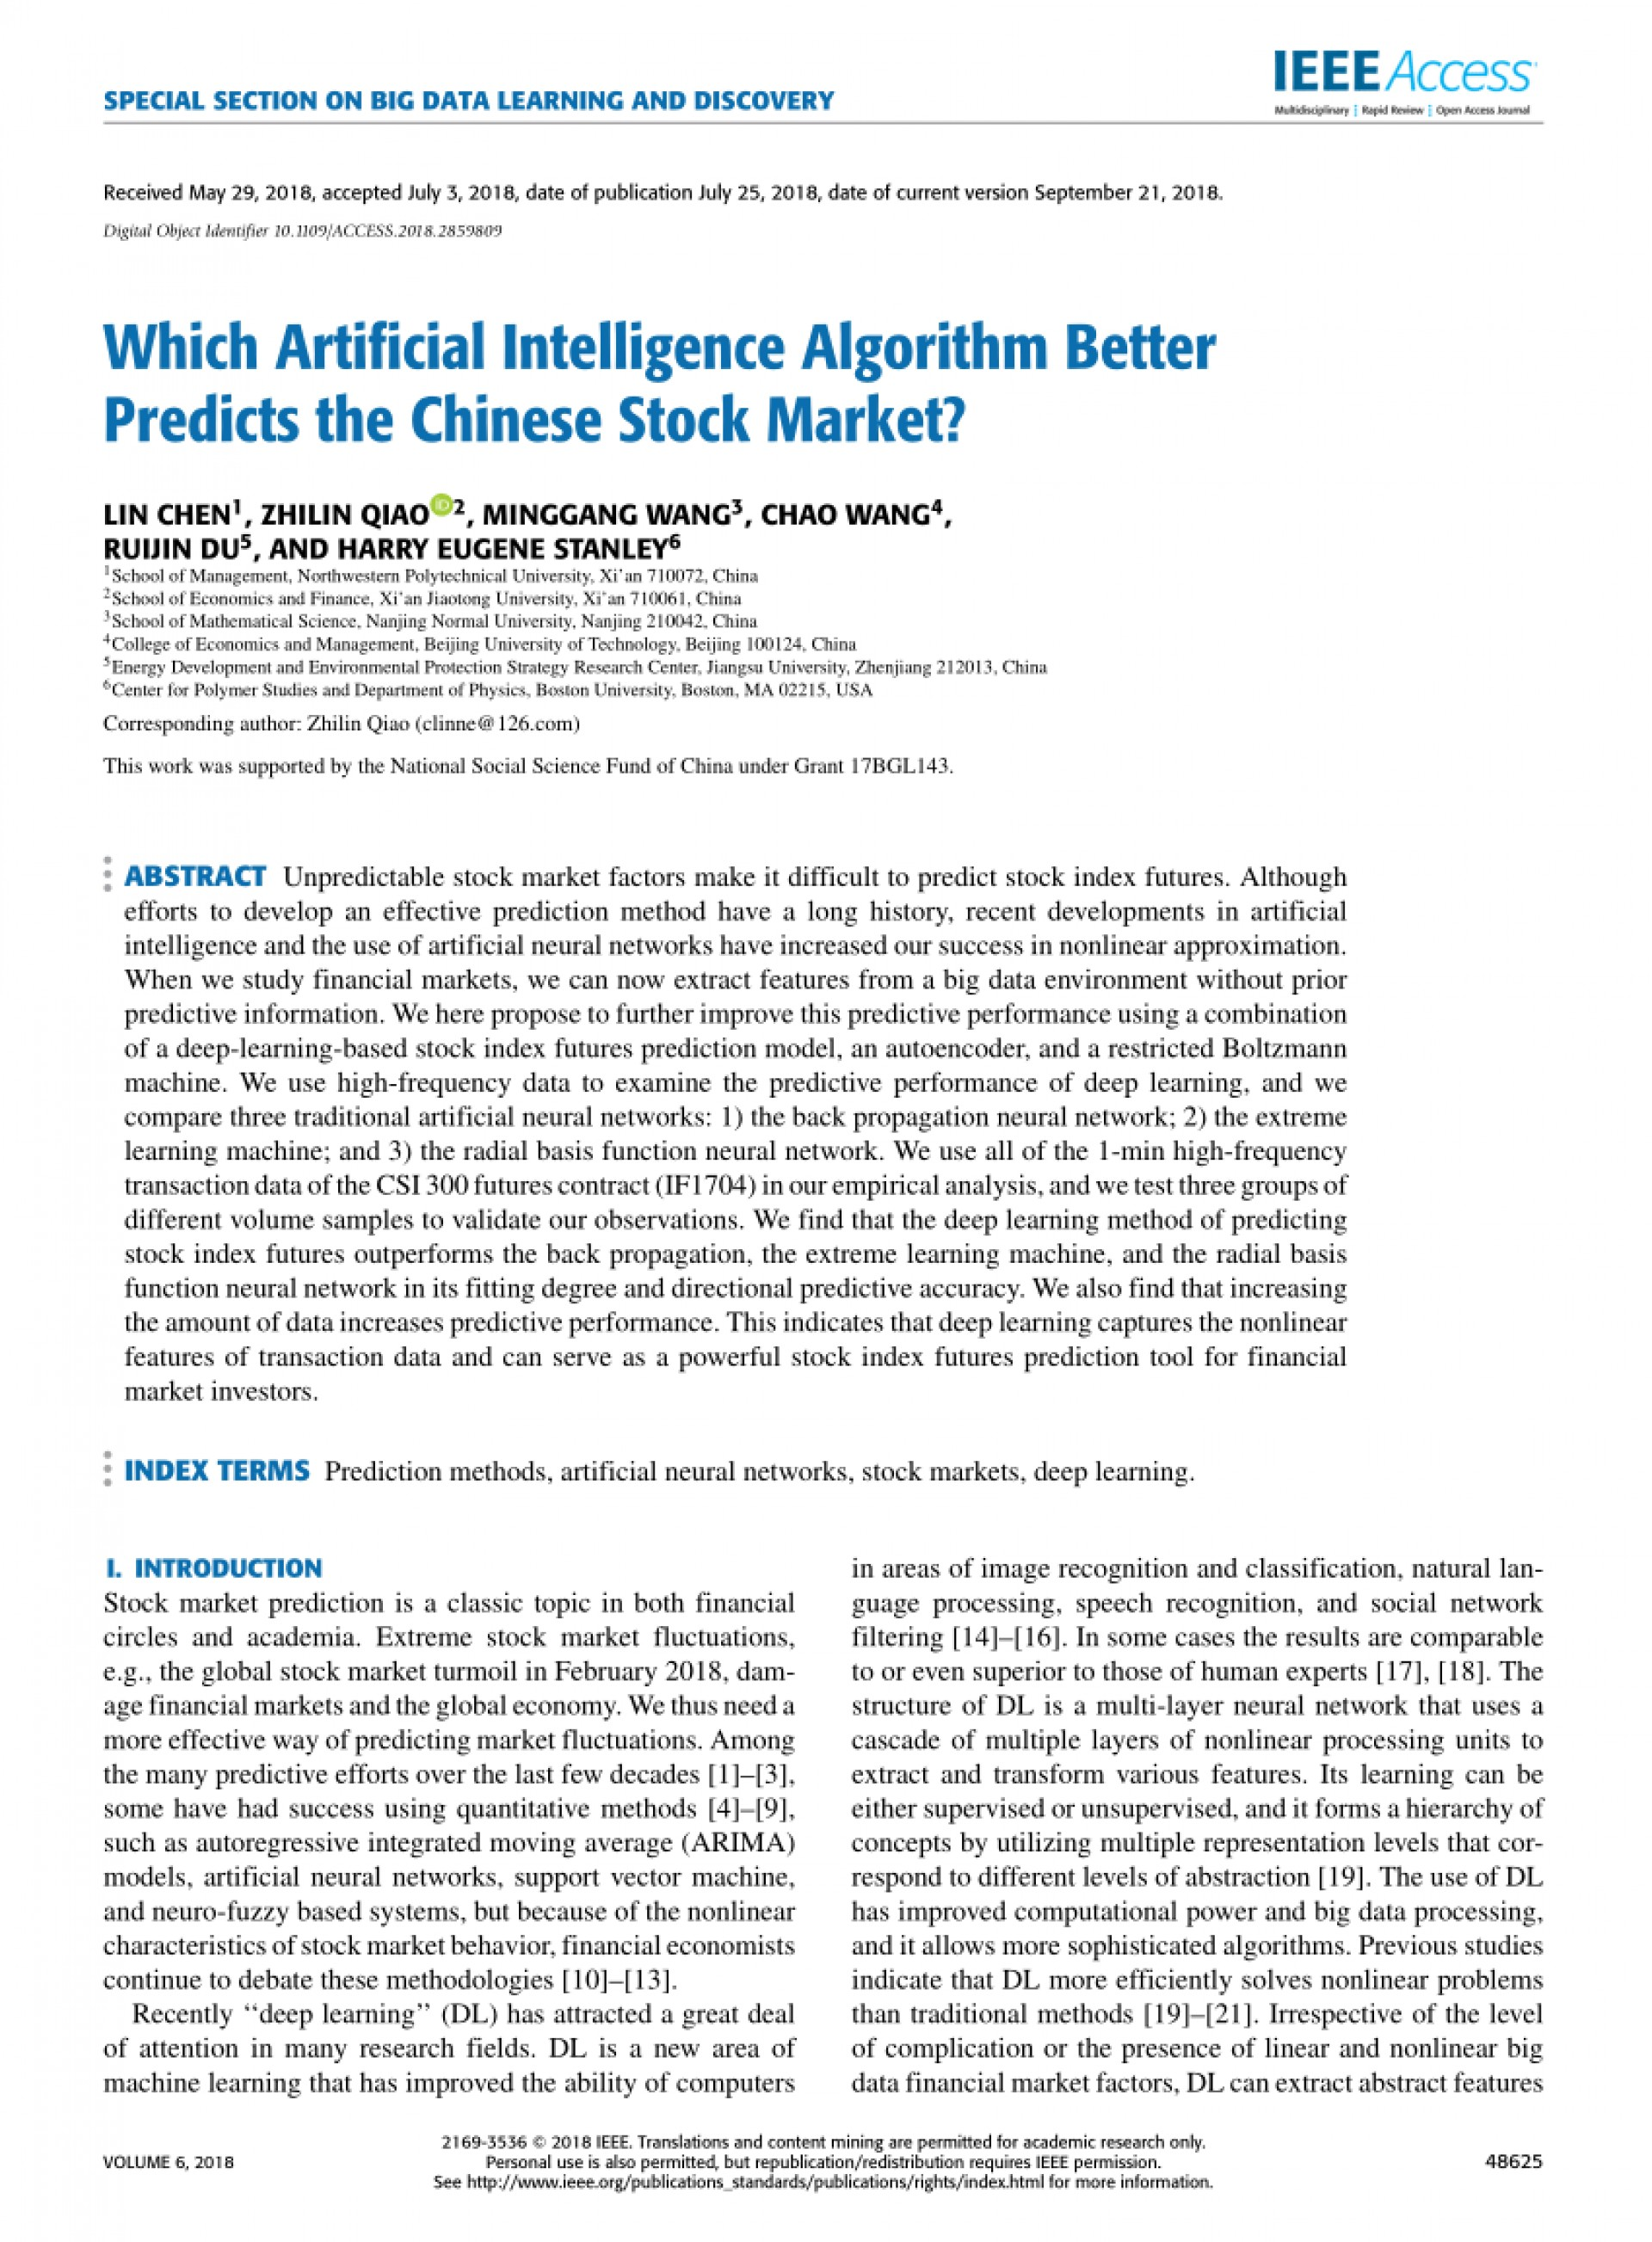 002 Research Paper Artificial Intelligence Ieee Impressive 2018 1920